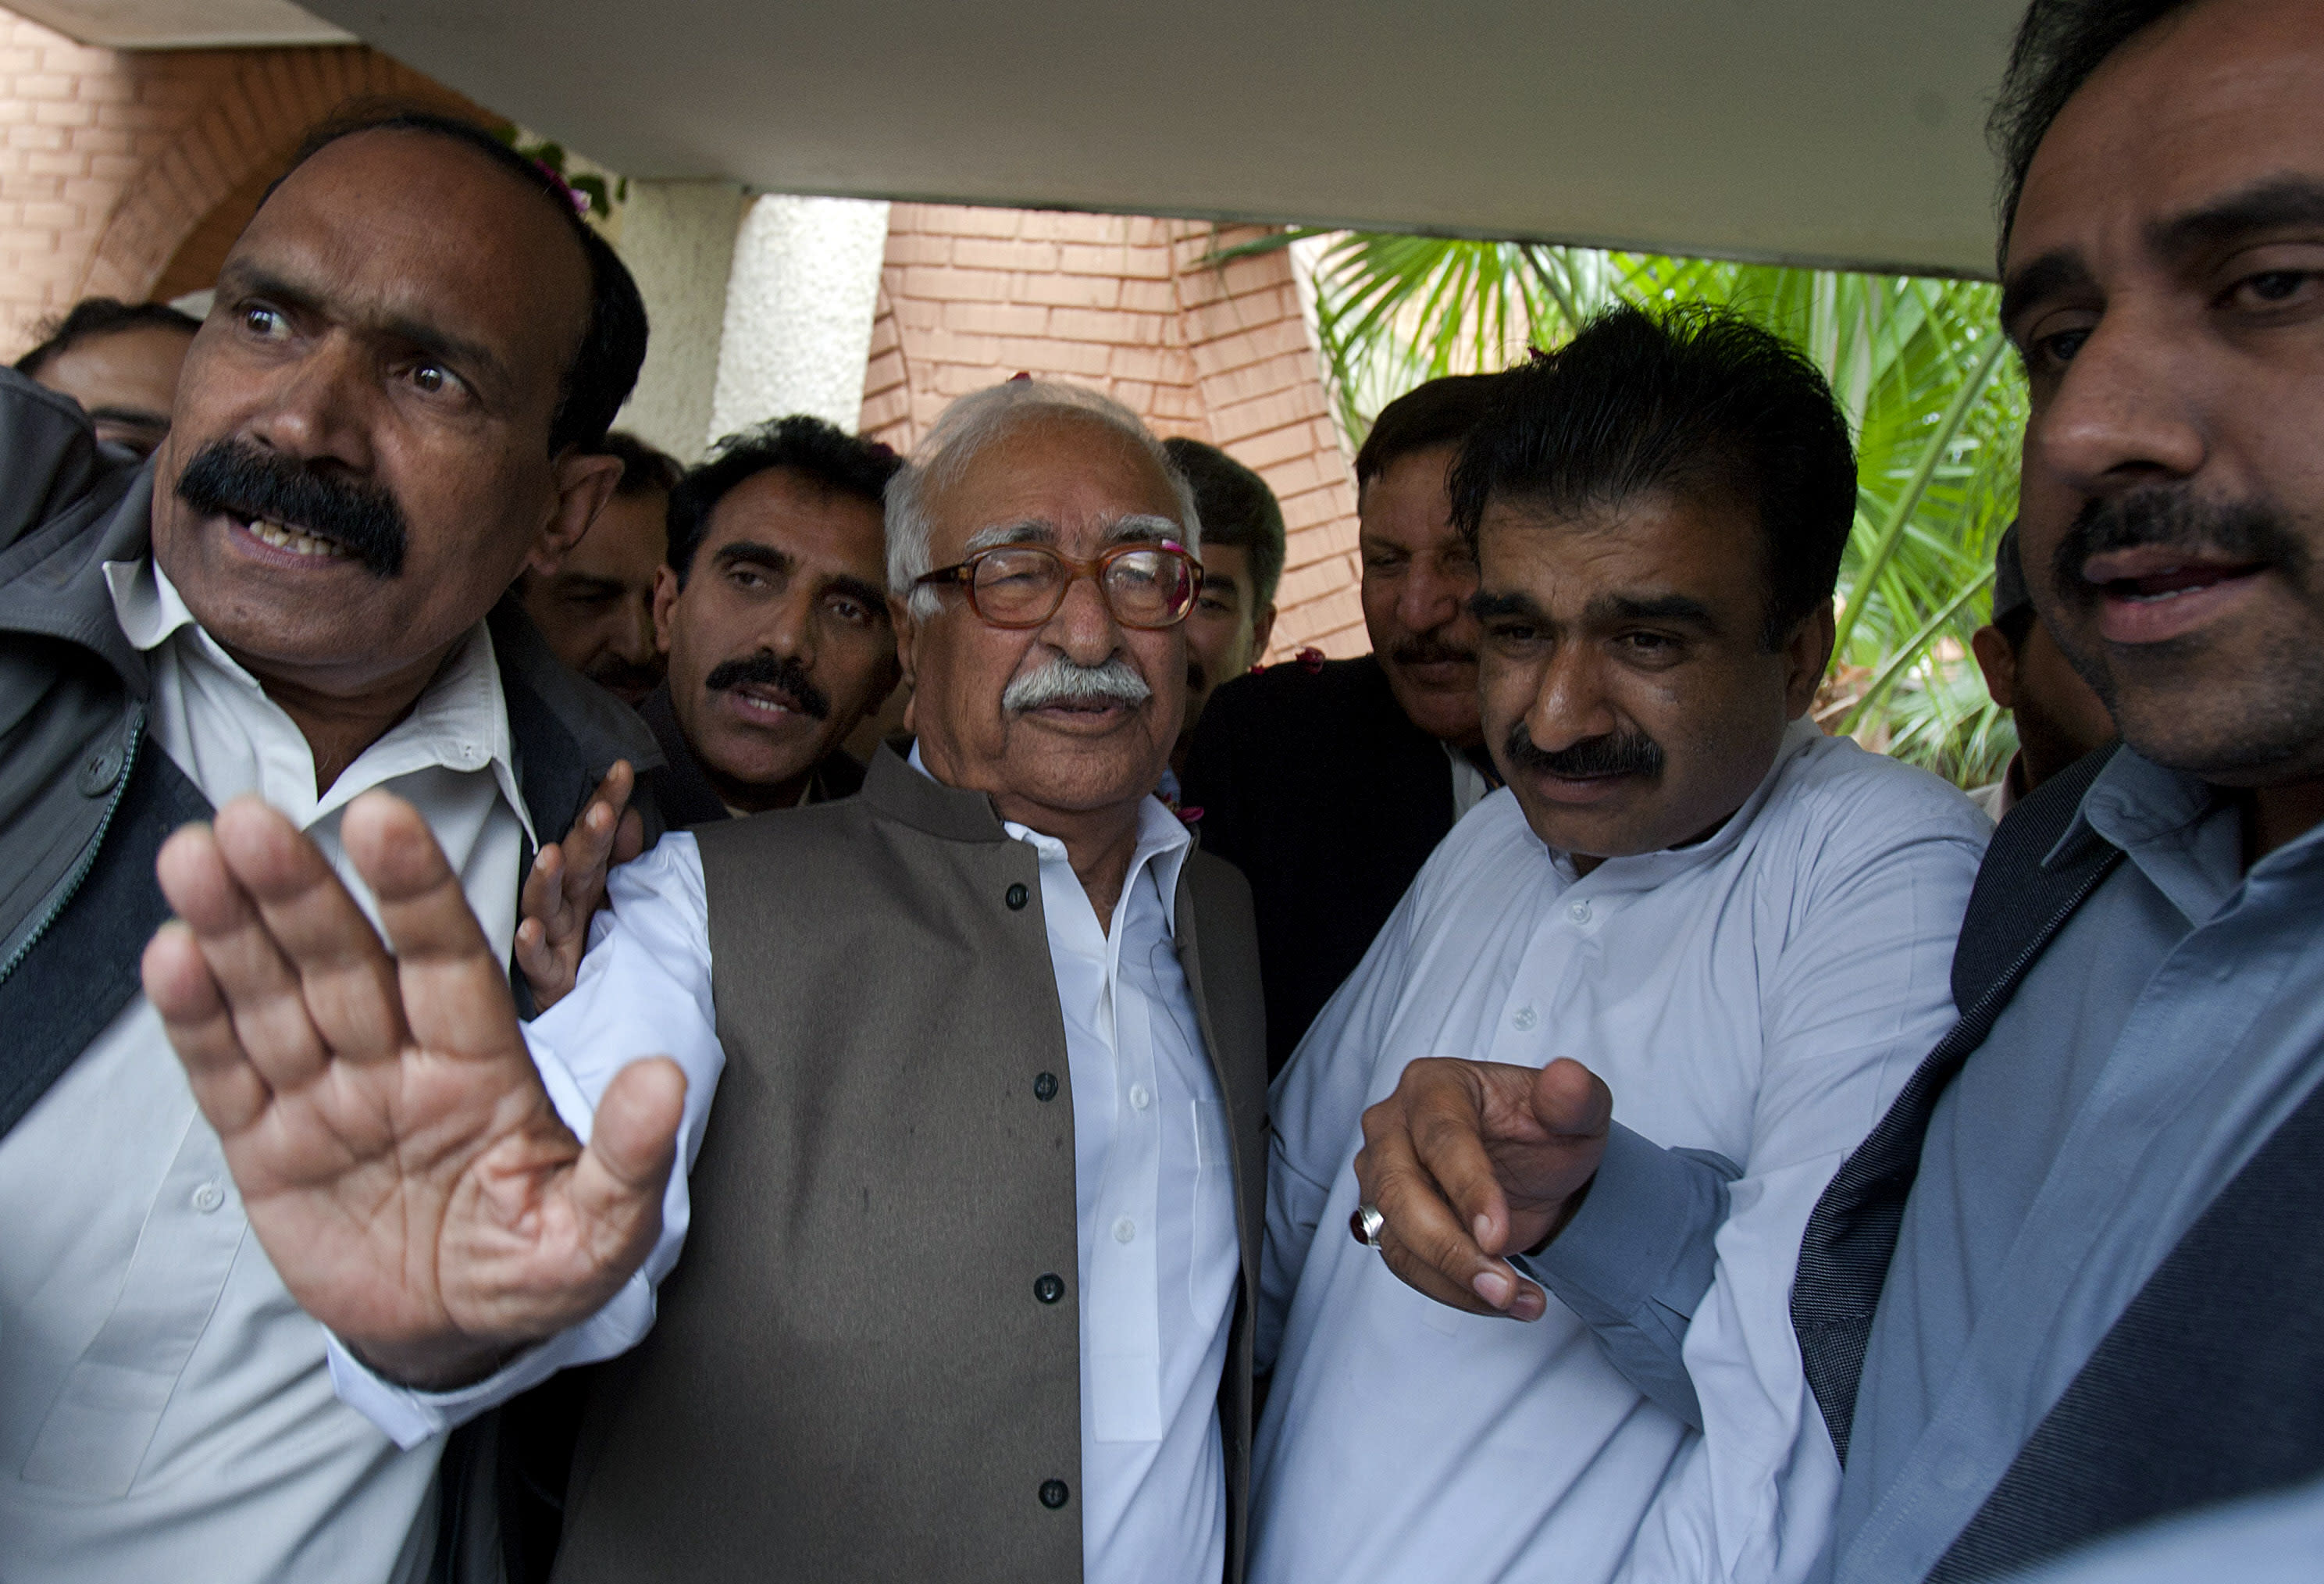 Mir Hazar Khan Khoso, center, nominated for Pakistan's caretaker prime minister, waves as he arrives to brief members of the media in Islamabad, Pakistan, Sunday, March 24, 2013. Pakistan's election commission has chosen a former high court chief justice Khoso nominated by the country's outgoing ruling party to serves as caretaker prime minister in the run up to a historic national election this spring. (AP Photo/Anjum Naveed)